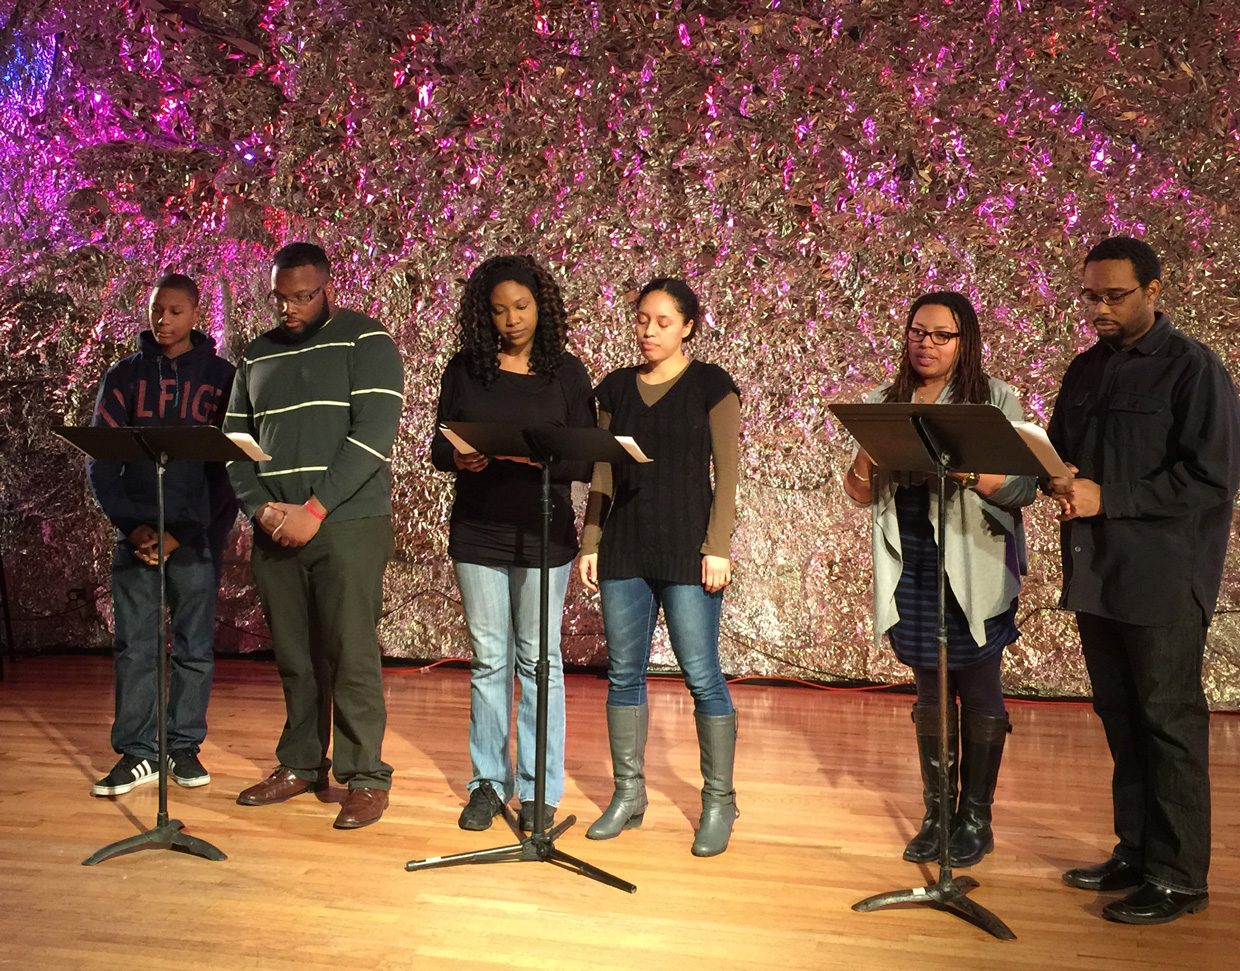 """Jay Mazyck, Justin Thomas, Lauren Lattimore, Wi-Moto Nyoka, Courtney Harge,and Seth Diggs reading Mary Burrill's """"Aftermath"""" at JACK, Brooklyn, Feb. 8, 2015. (photo by author for Hyperallergic)"""